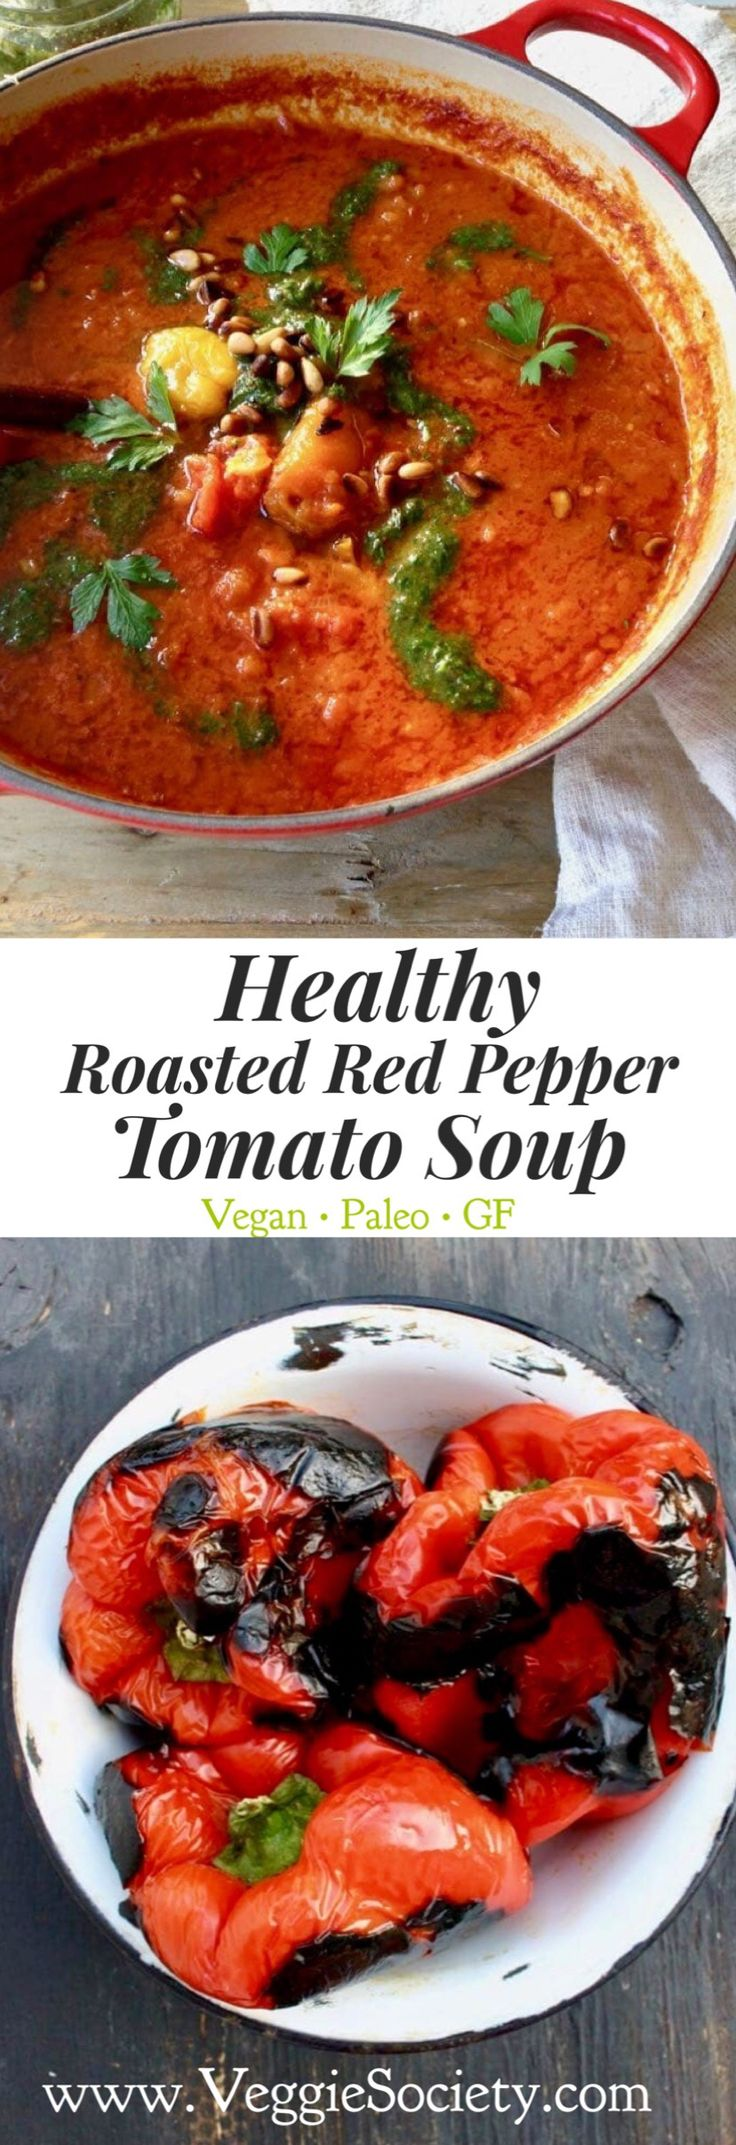 Healthy Roasted Red Pepper Tomato Soup Recipe with Pesto and Smoked Paprika. Vegan • Easy • Paleo • Gluten-free | VeggieSociety.com @VeggieSociety #1